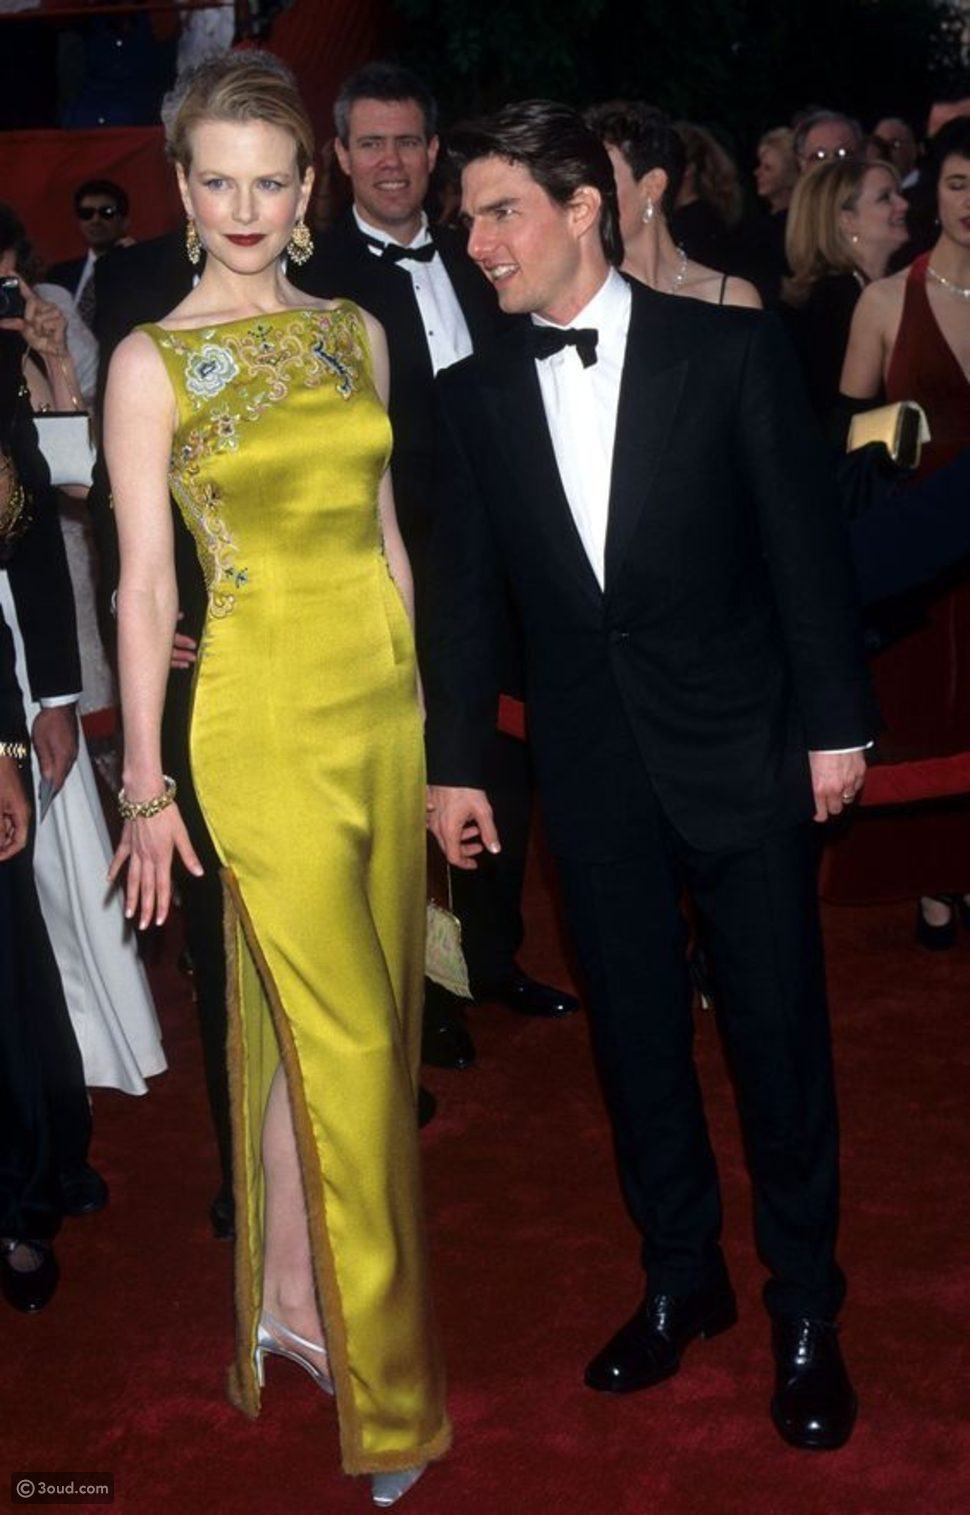 Christian Dior Haute Couture chartreuse gown worn by Nicole Kidman to the 1997 Oscars, designed by John Galliano: $2 million